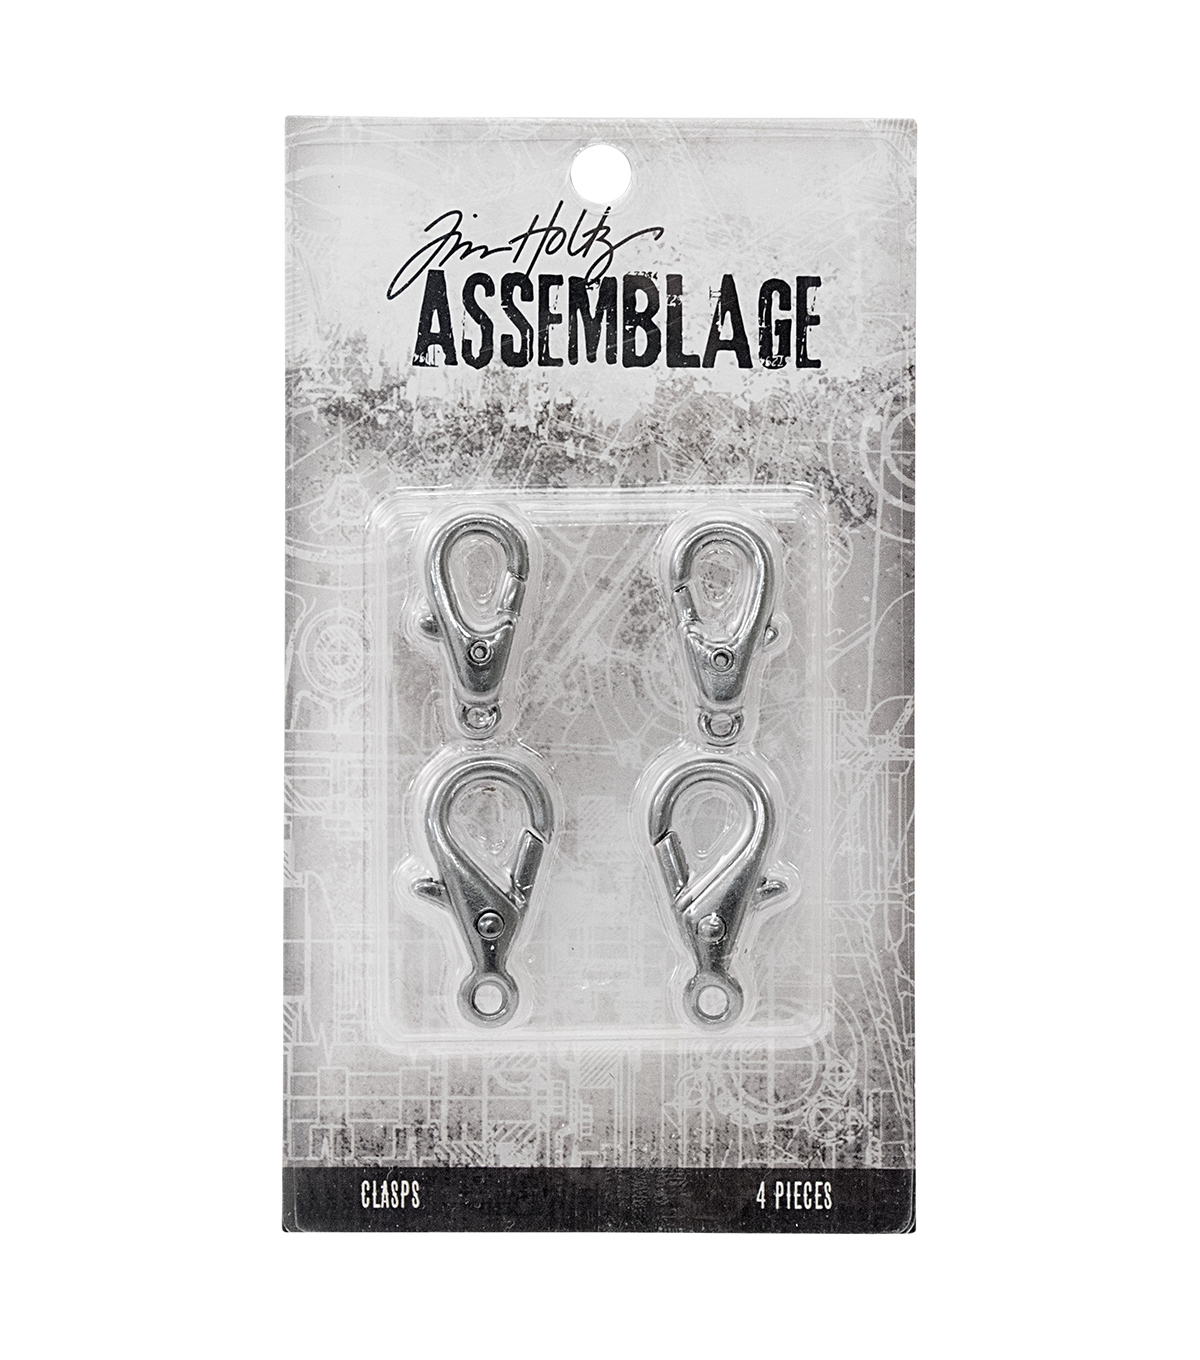 Tim Holtz® Assemblage Pack of 4 Large Silver Lobster Claws Clasps